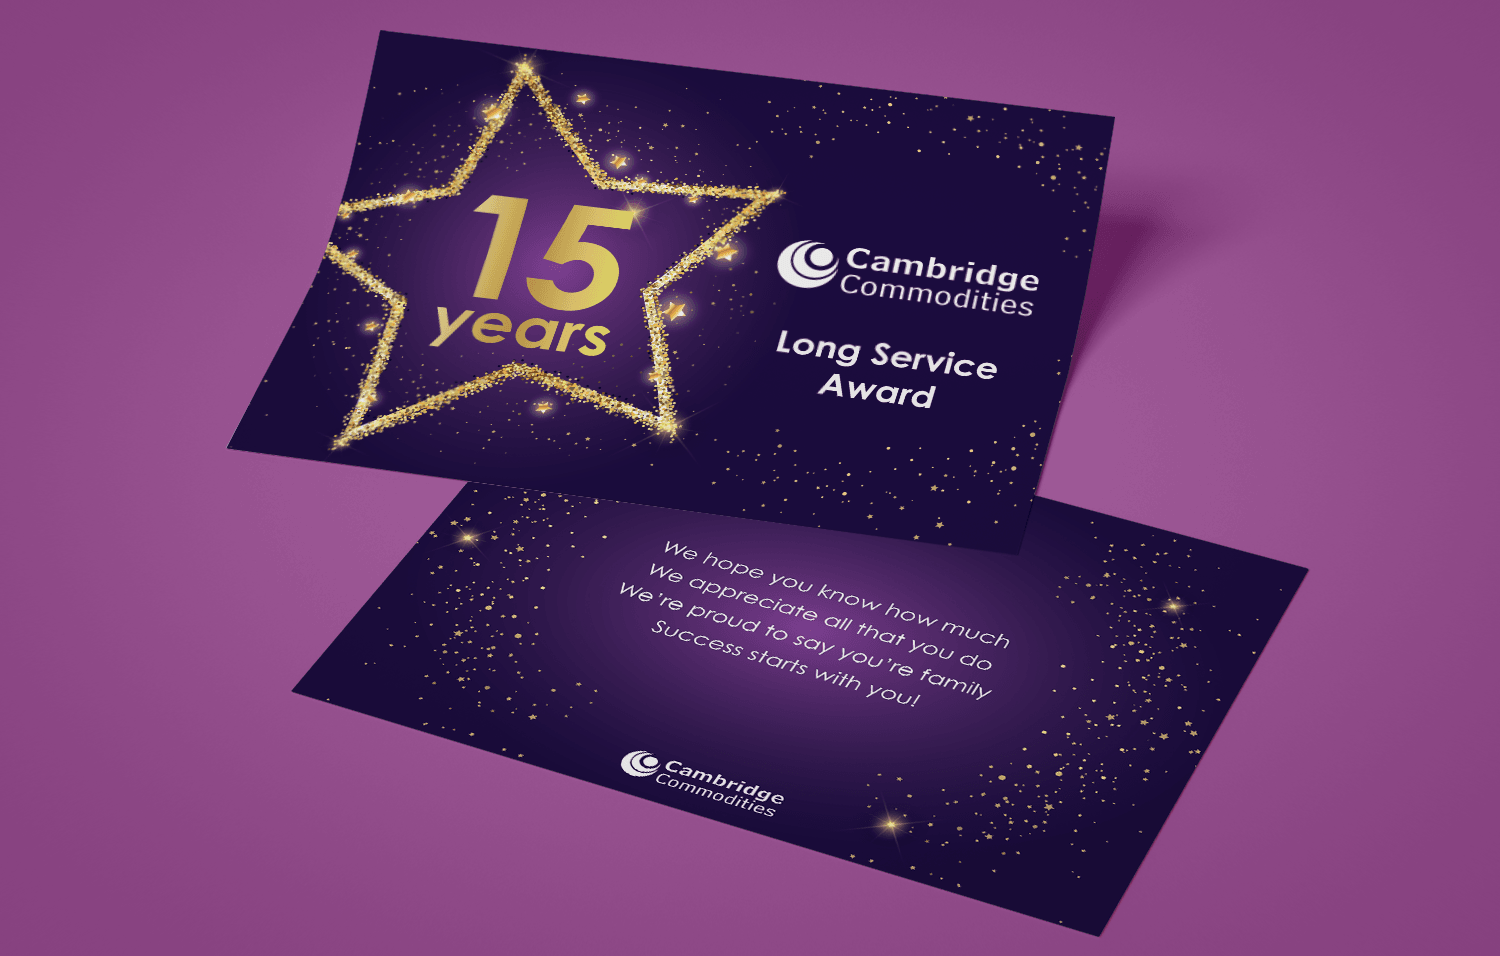 Cambridge Commodities Long service award